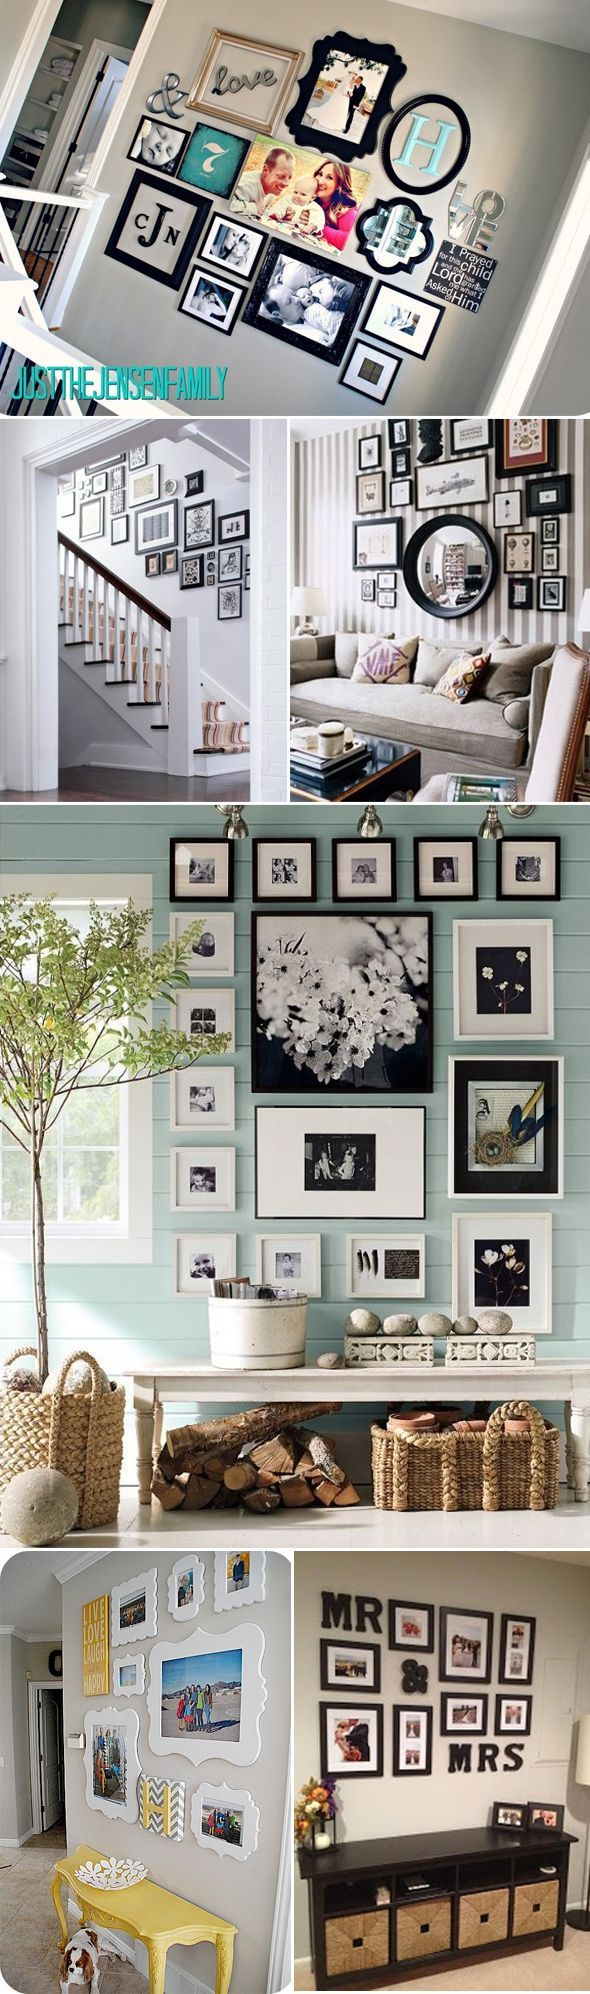 Ein rahmen zu hause design-ideen unique ways of displaying photographs in your home  funny